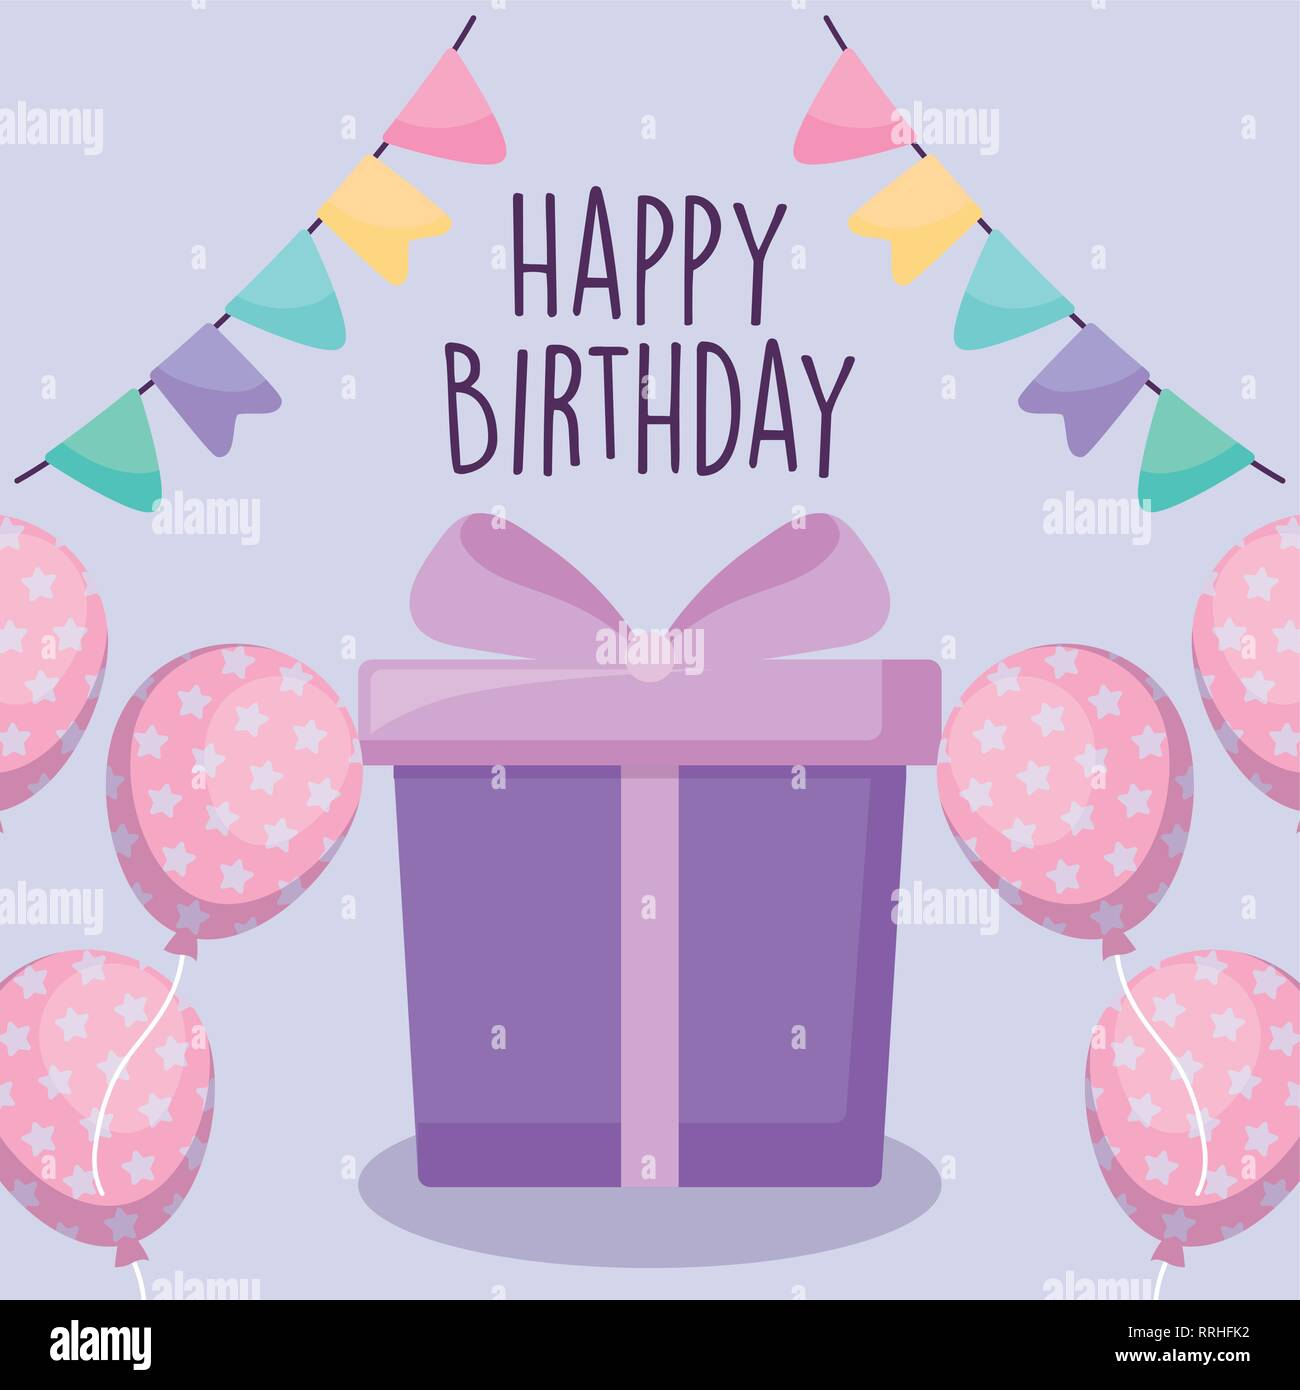 Happy Birthday Card With Gift Box Vector Illustration Design